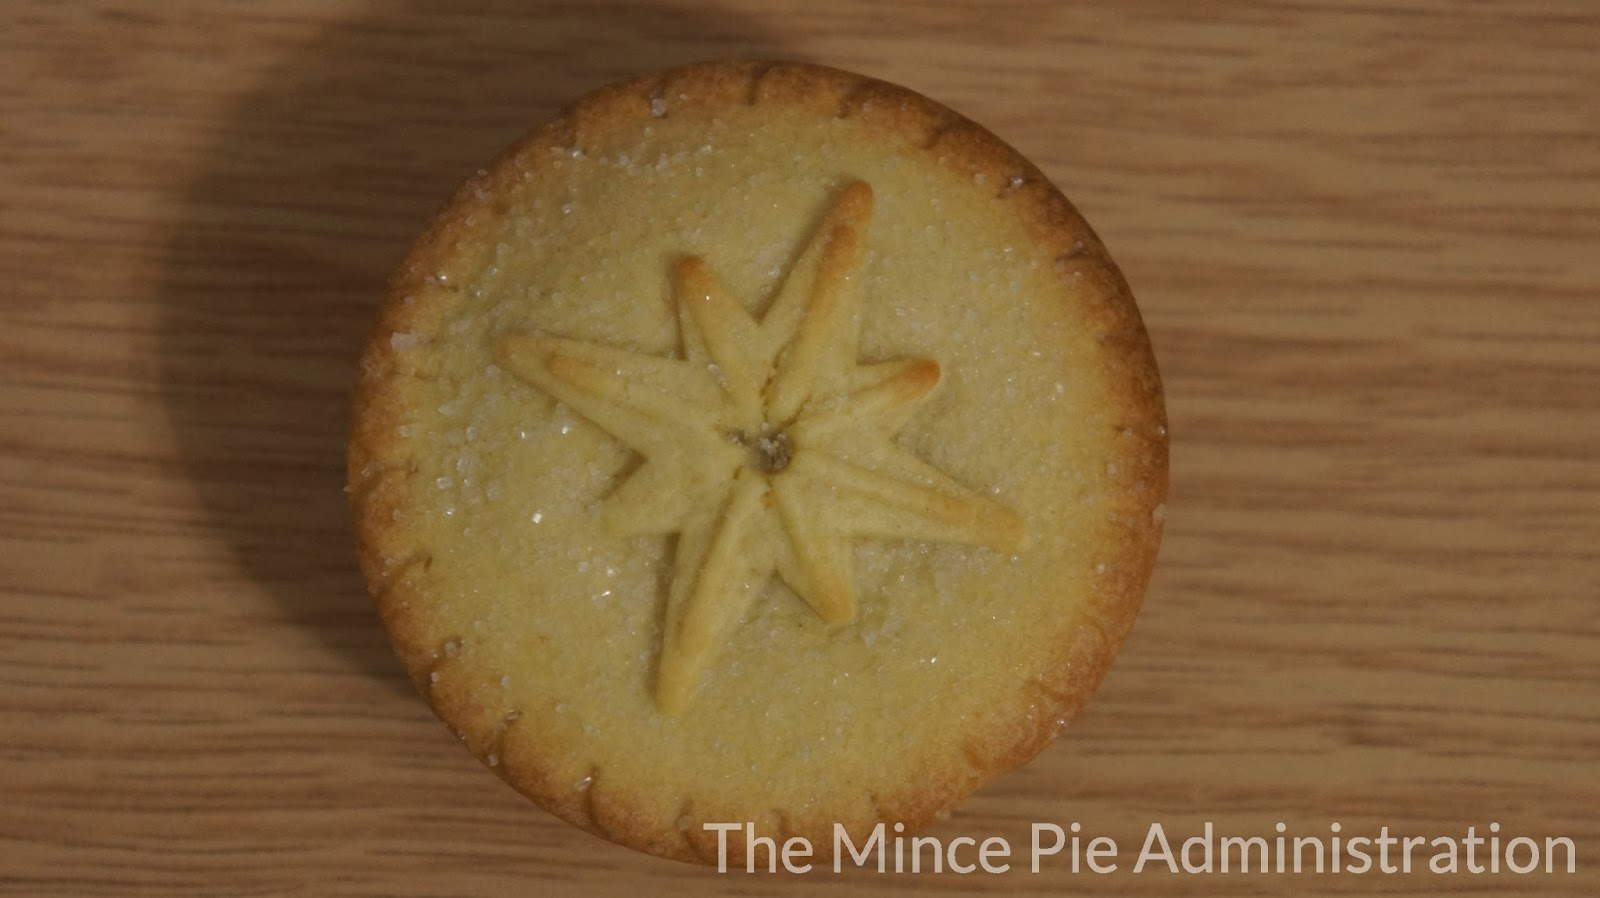 The Mince Pie Administration: Lidl - Snowy Lodge - 6 Luxury Mince Pies